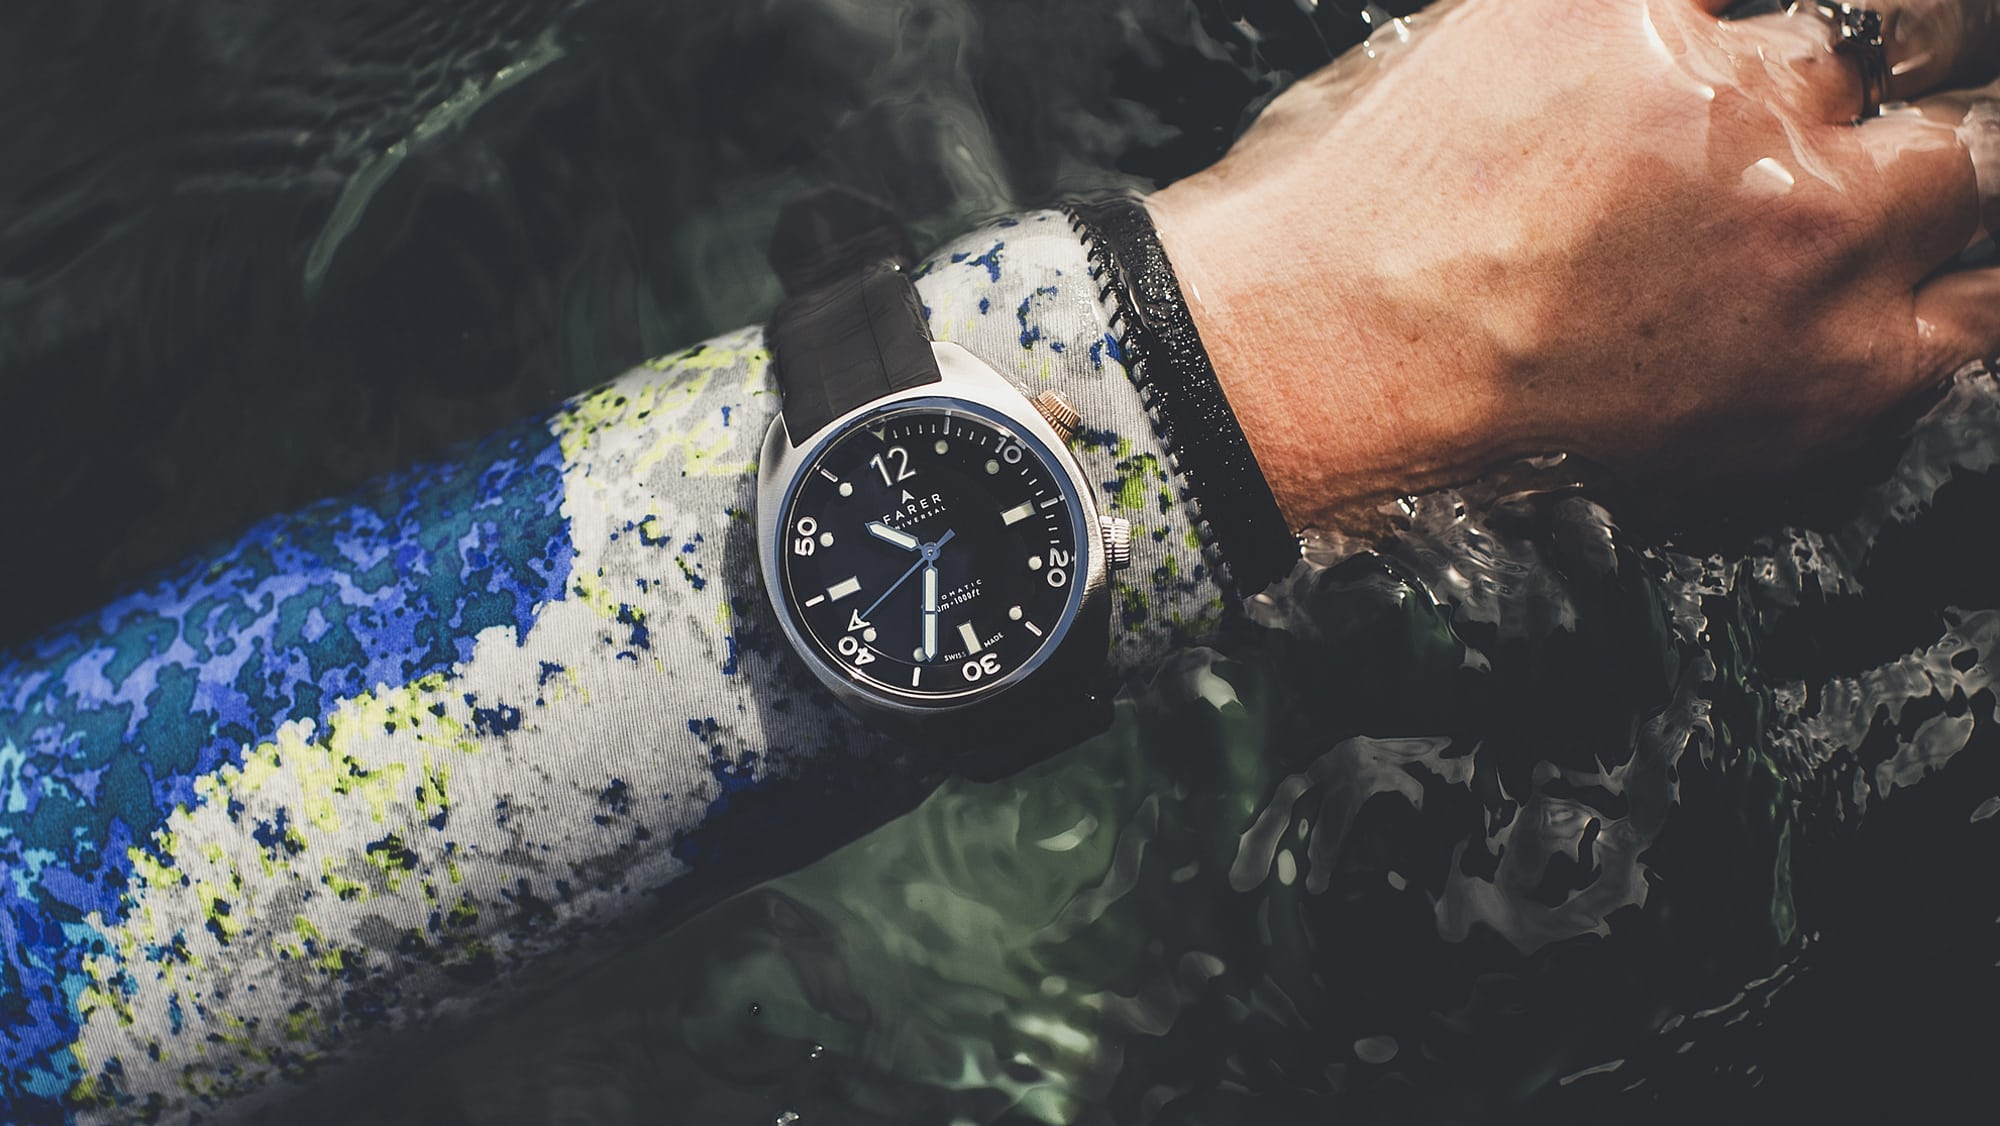 Farer aqua compressor 1.jpg?ixlib=rails 1.1 introducing: farer aqua compressor automatic dive watches Introducing: Farer Aqua Compressor Automatic Dive Watches Farer Aqua Compressor 1